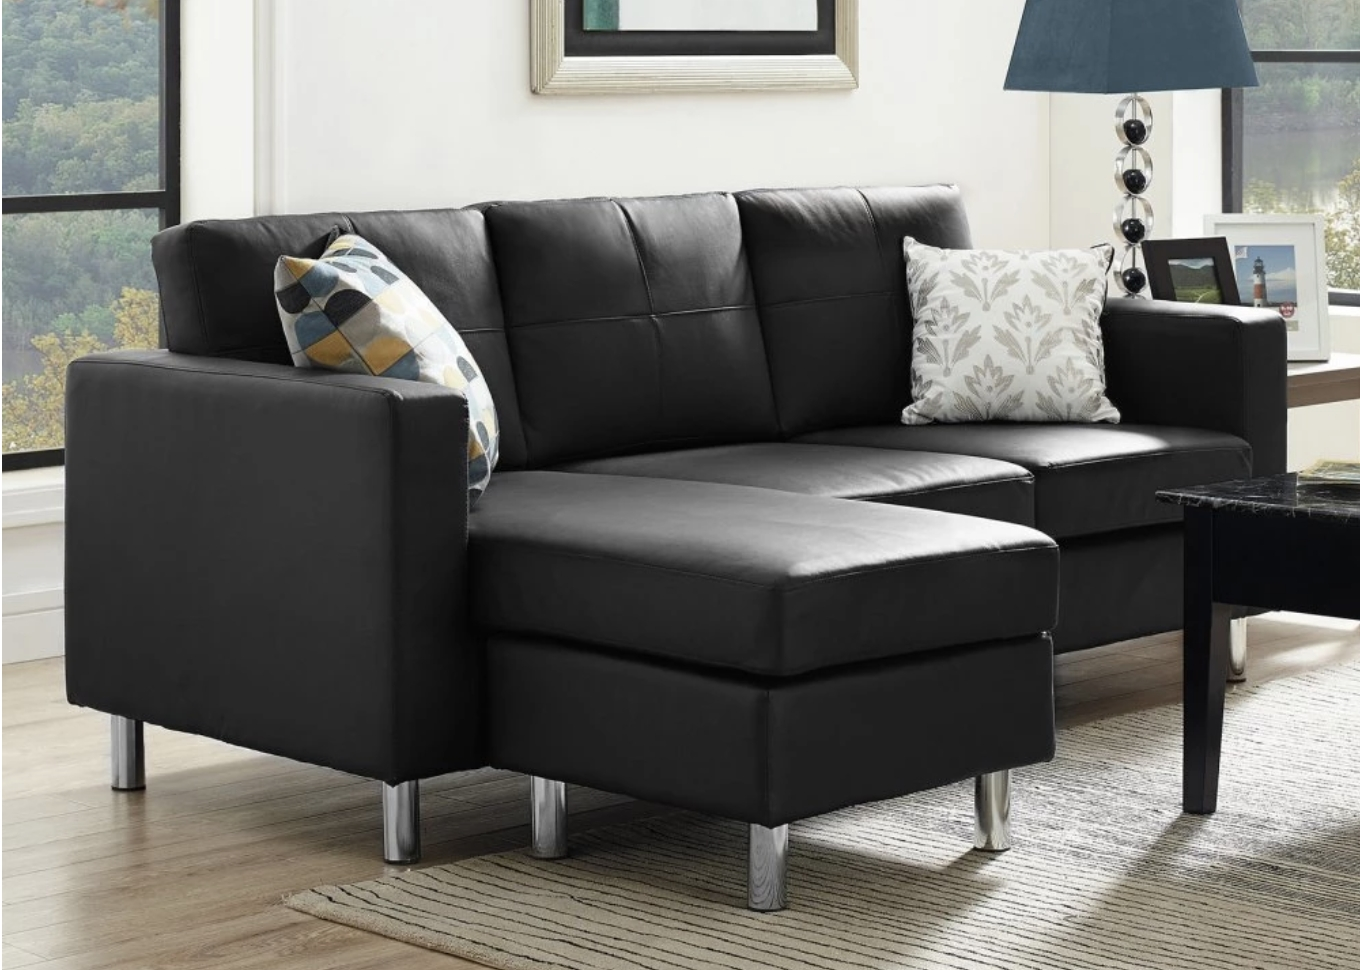 75 Modern Sectional Sofas For Small Spaces (2018) pertaining to Canada Sectional Sofas for Small Spaces